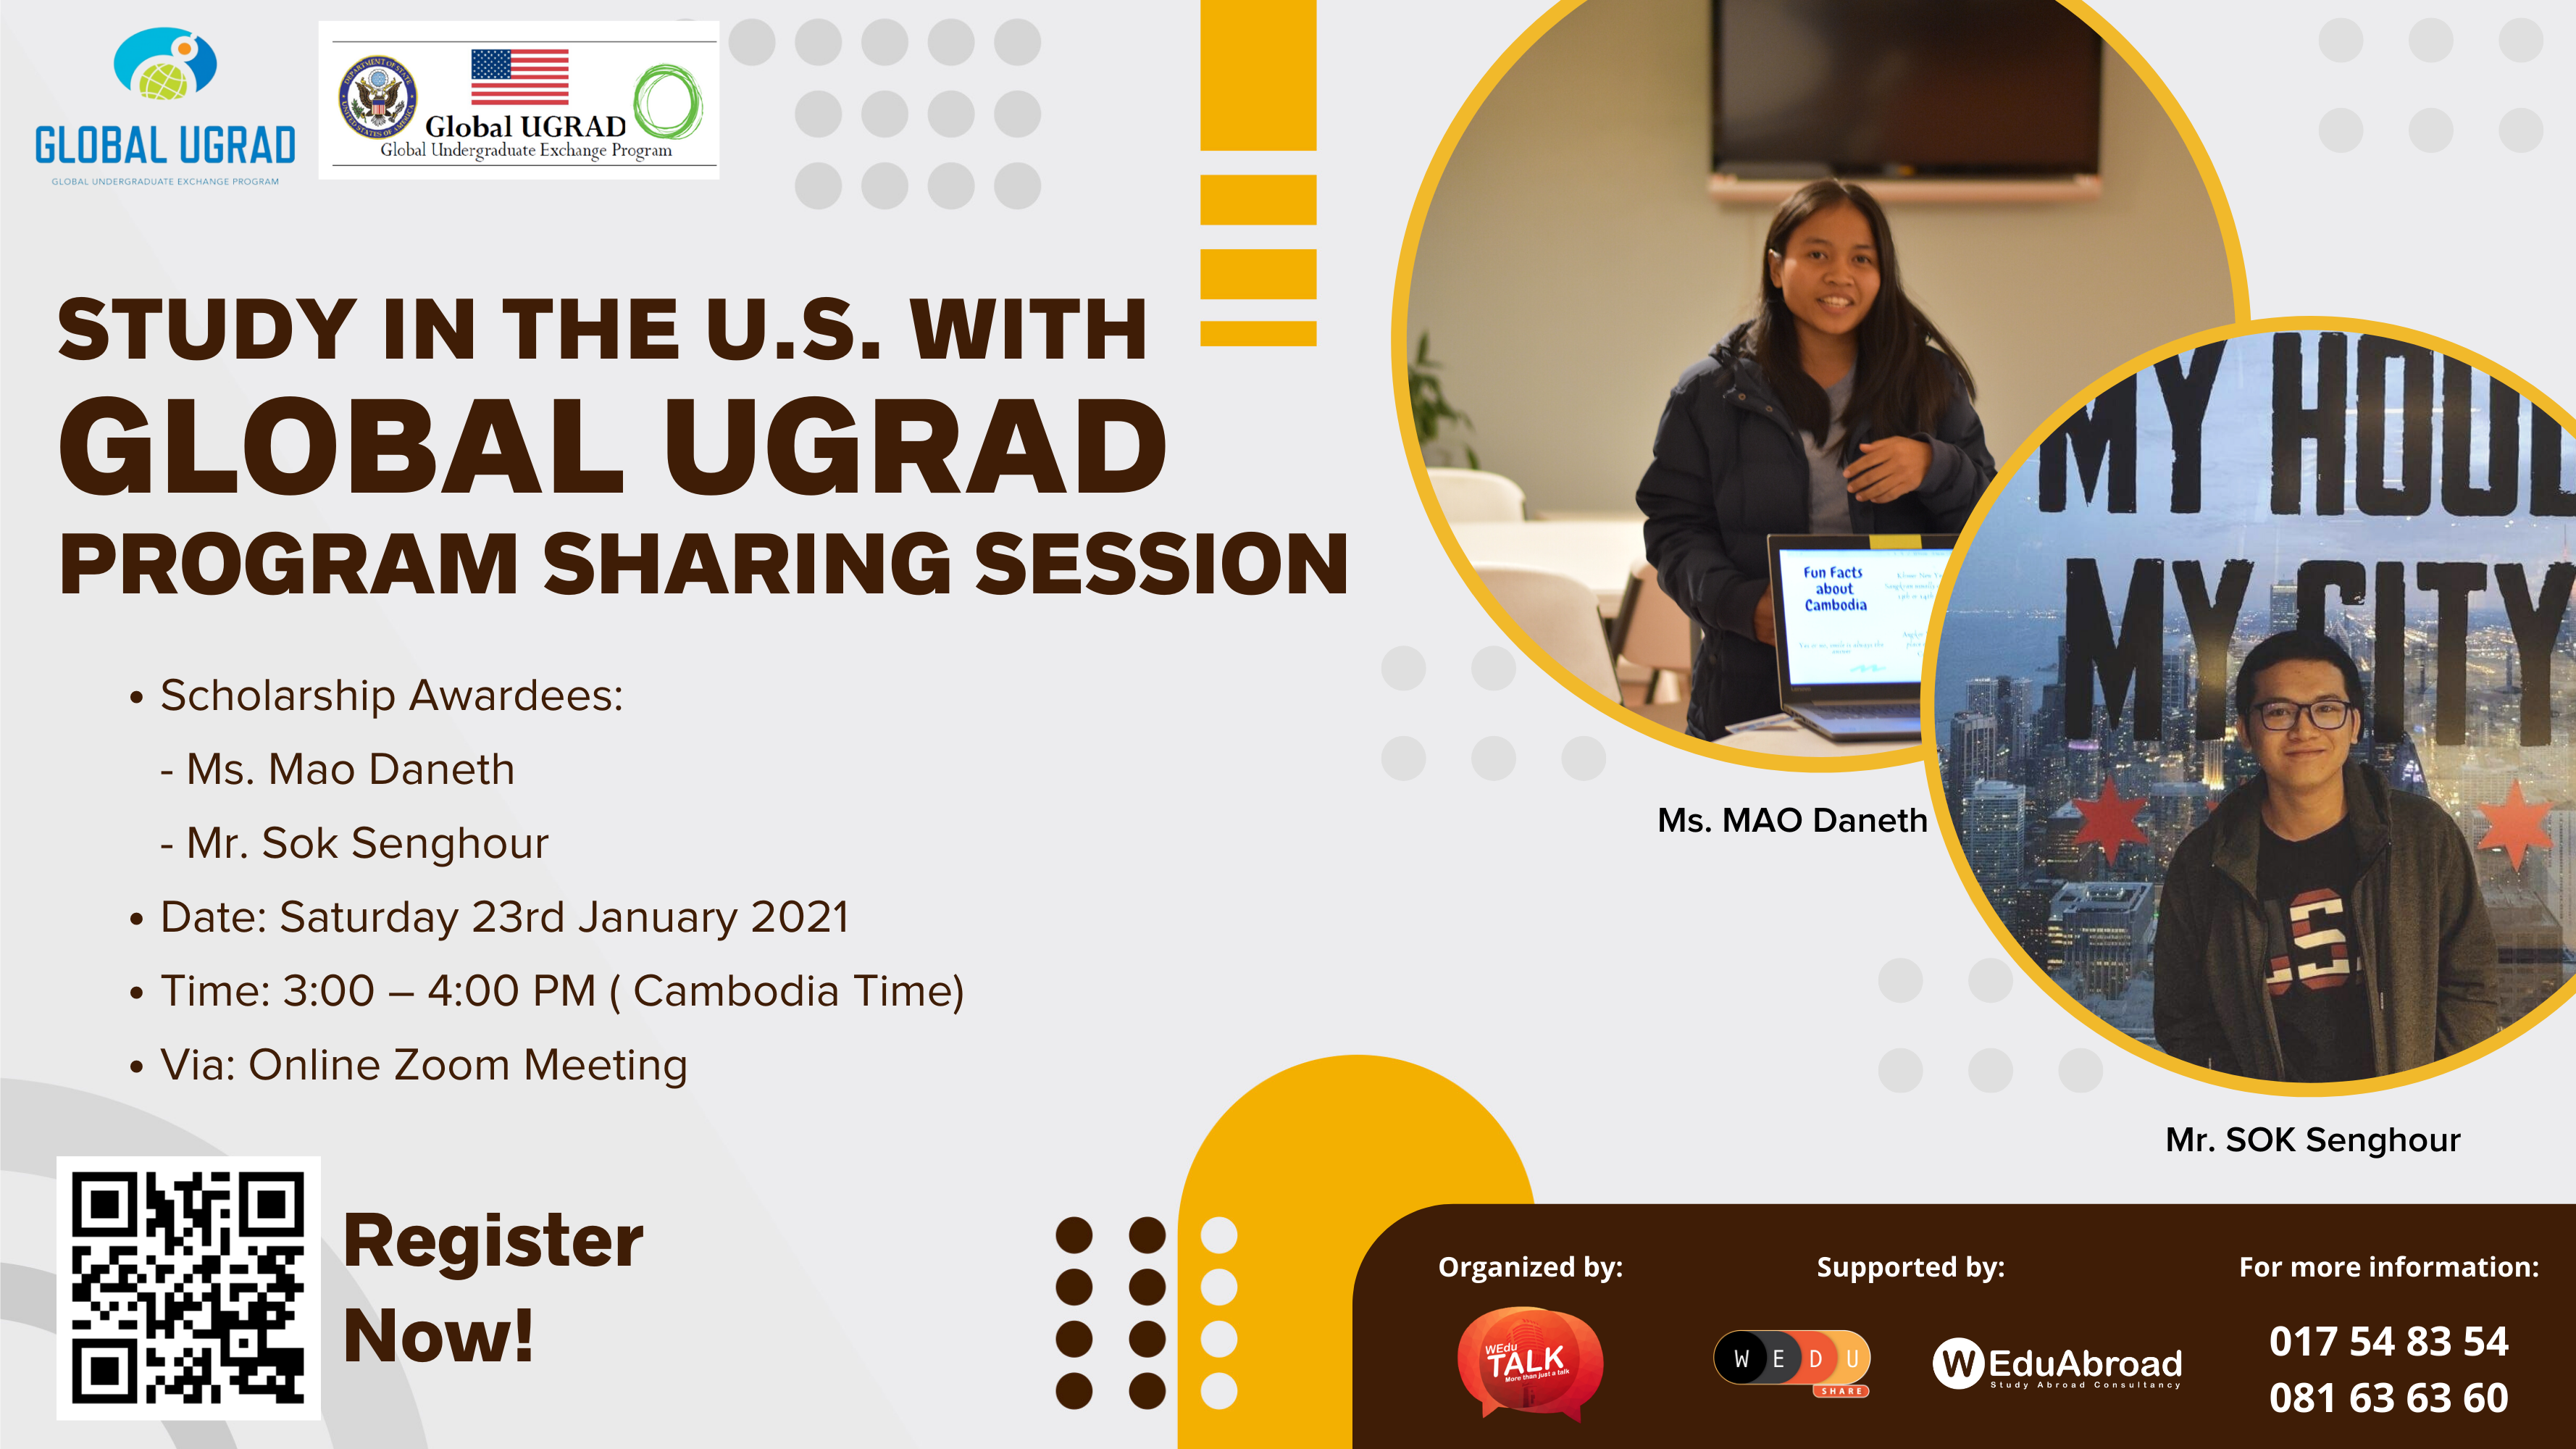 Study in the U.S. with Global UGRAD Program Sharing Session